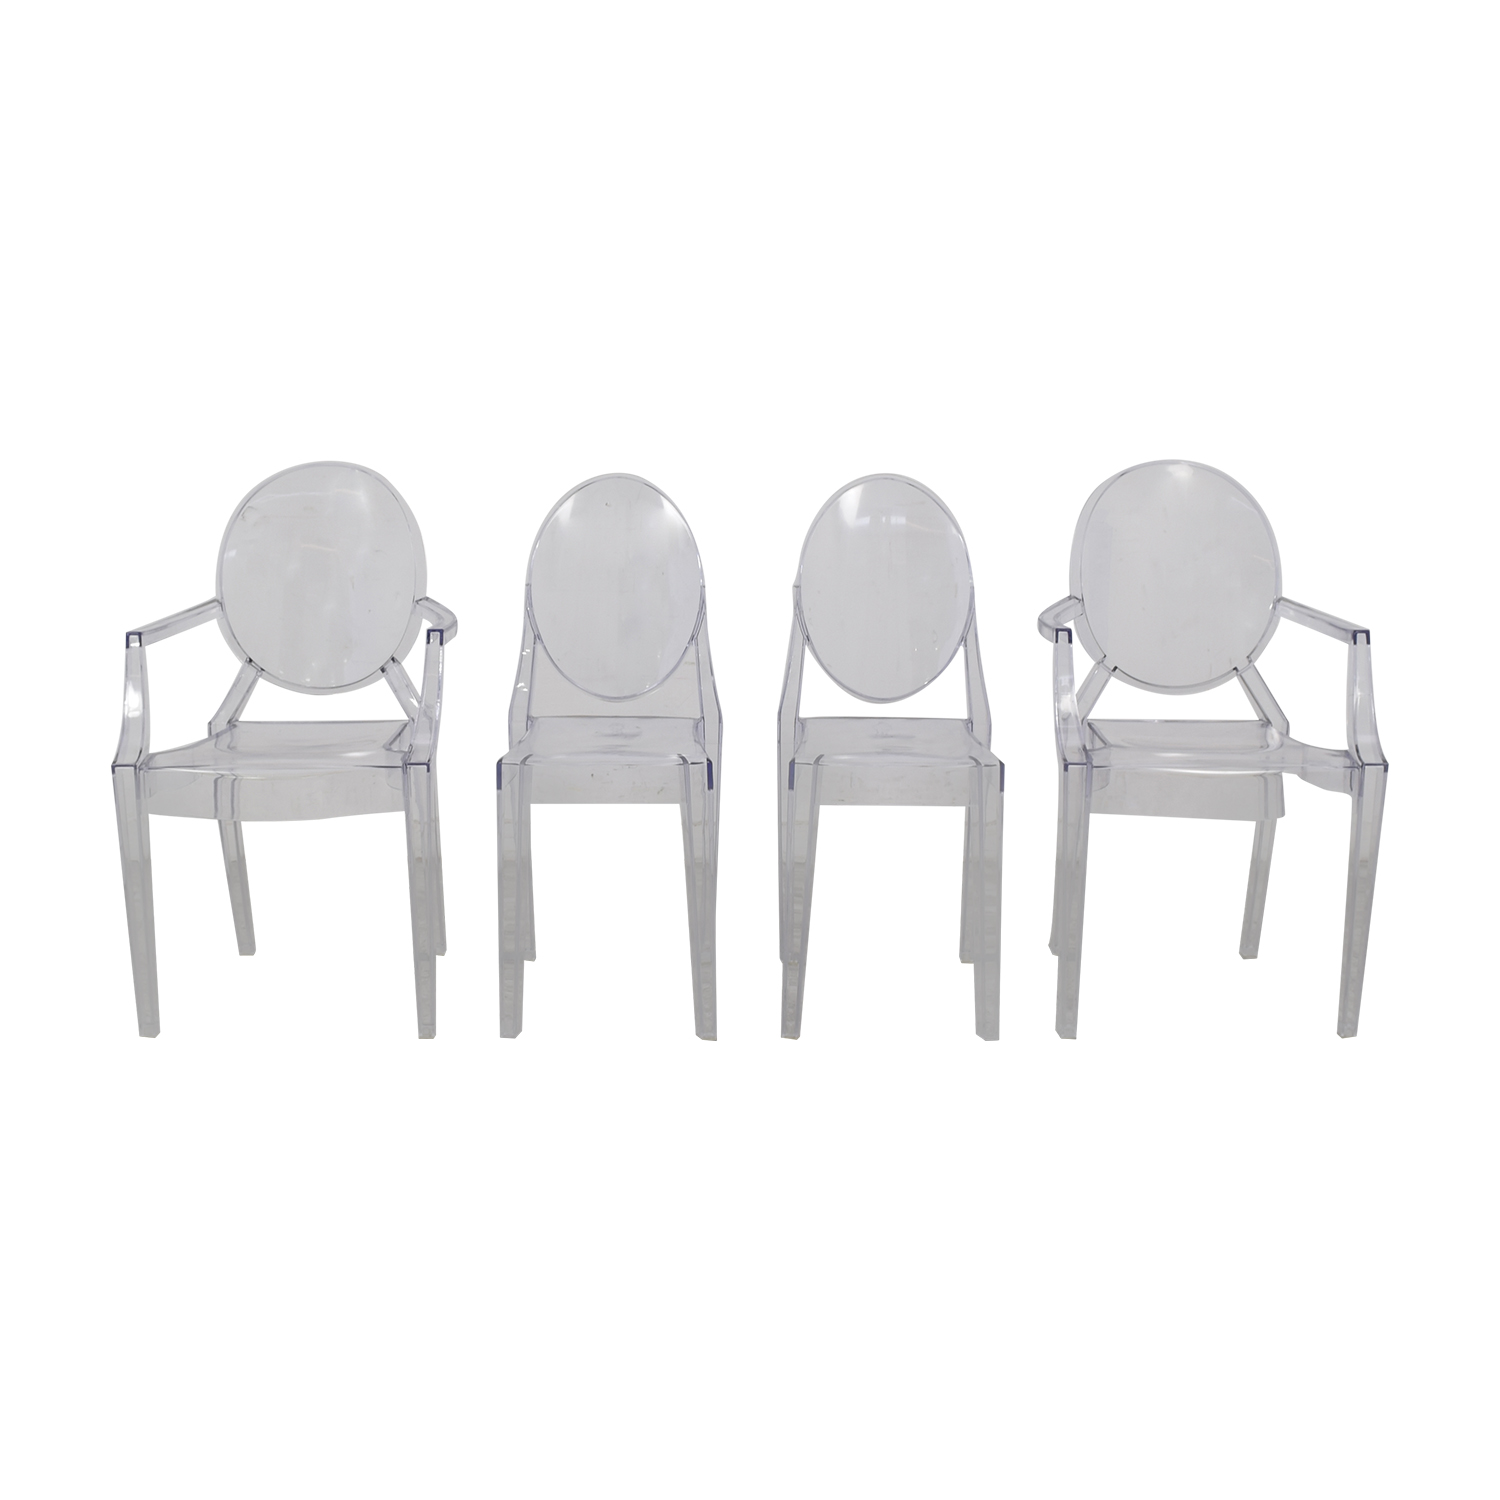 Rove Concepts Rove Concepts Victoria Ghost Arm and Side Chairs nj